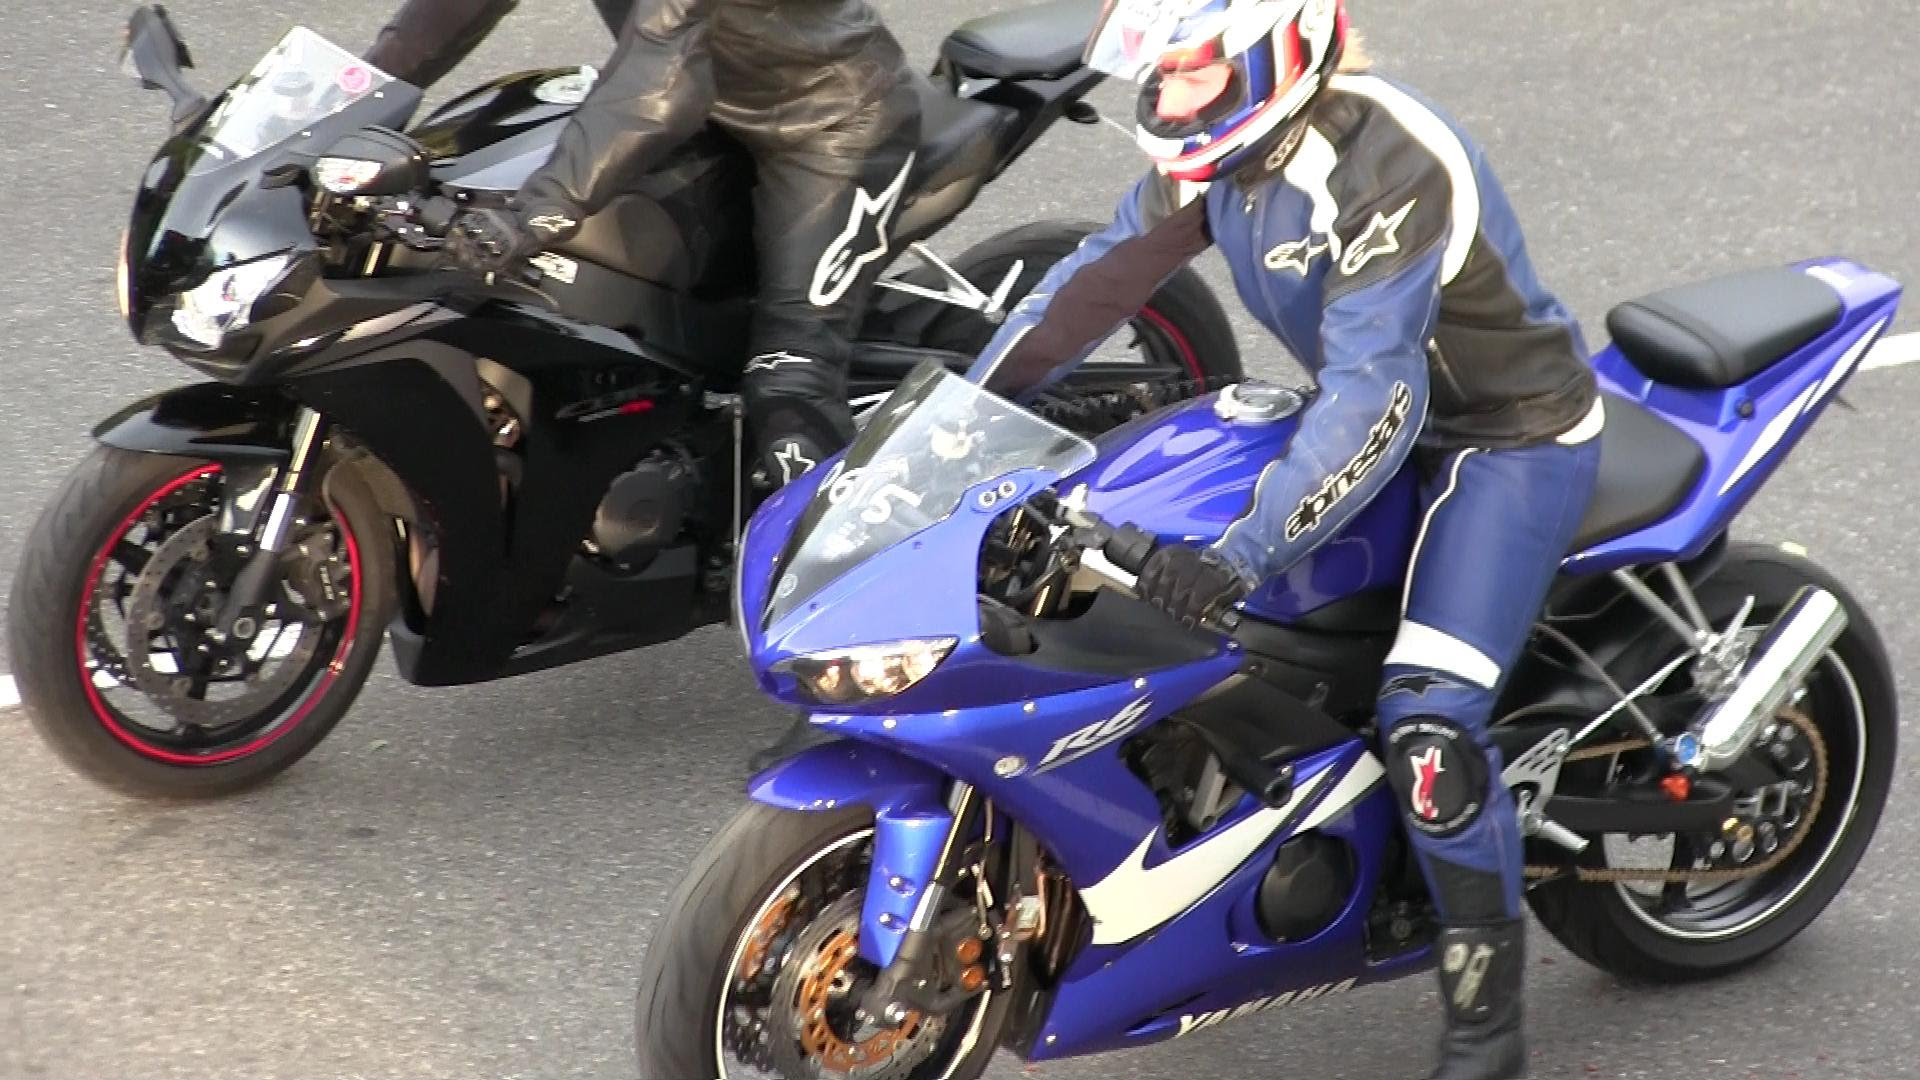 The Best Street Bikes Drag Racingr6 Vs Cbr 1000rrkawasaki Ninja